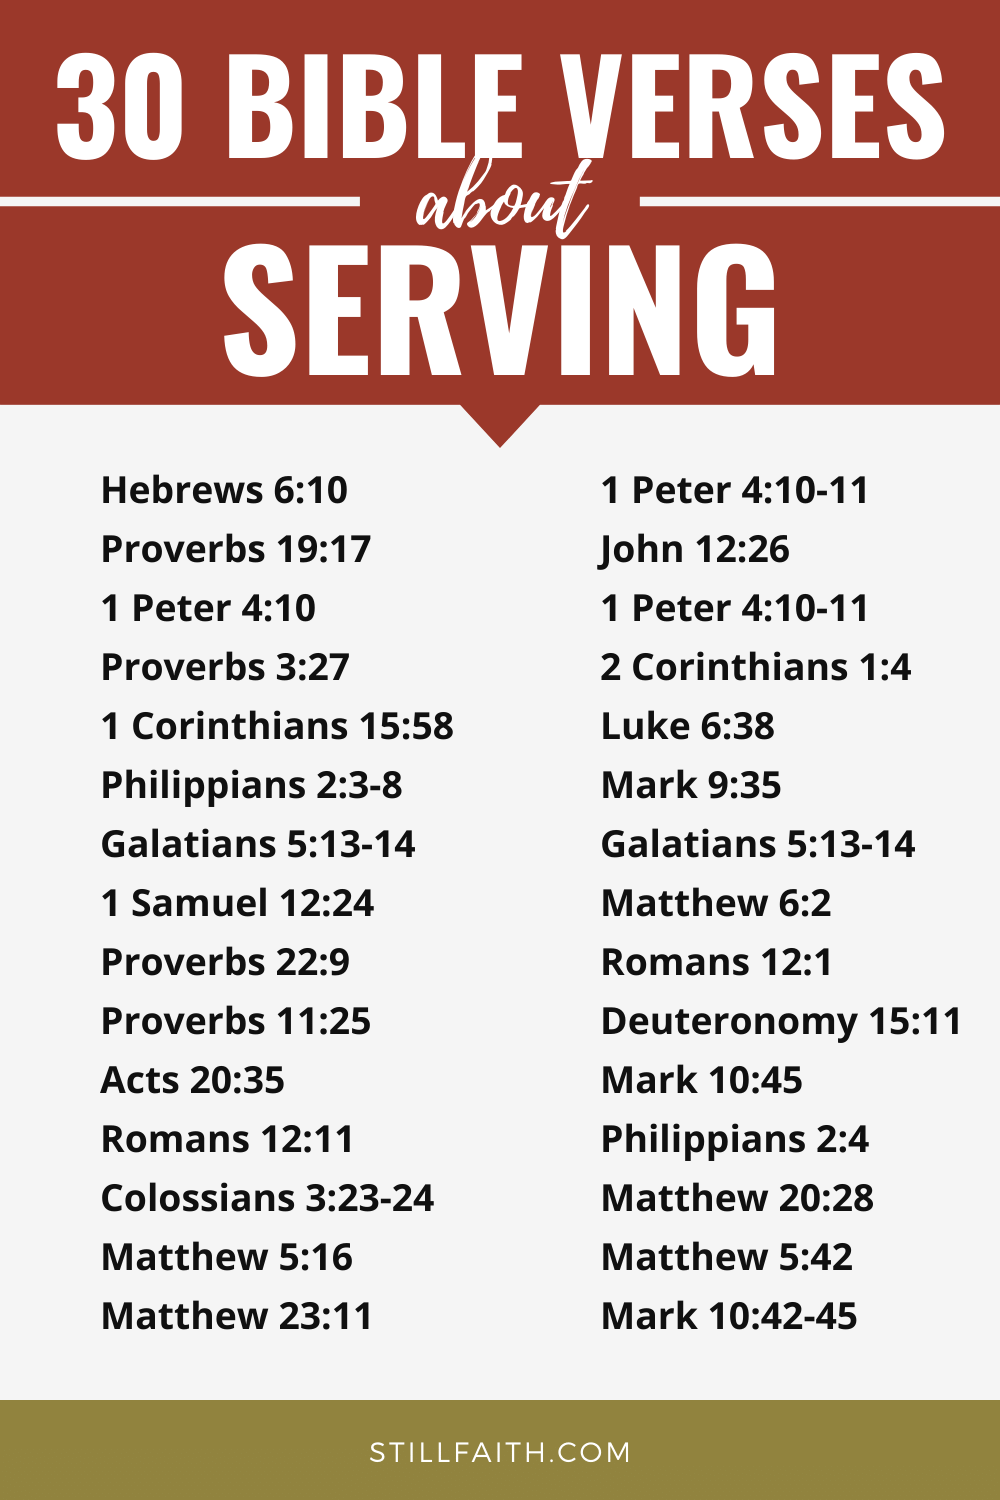 159 Bible Verses about Serving